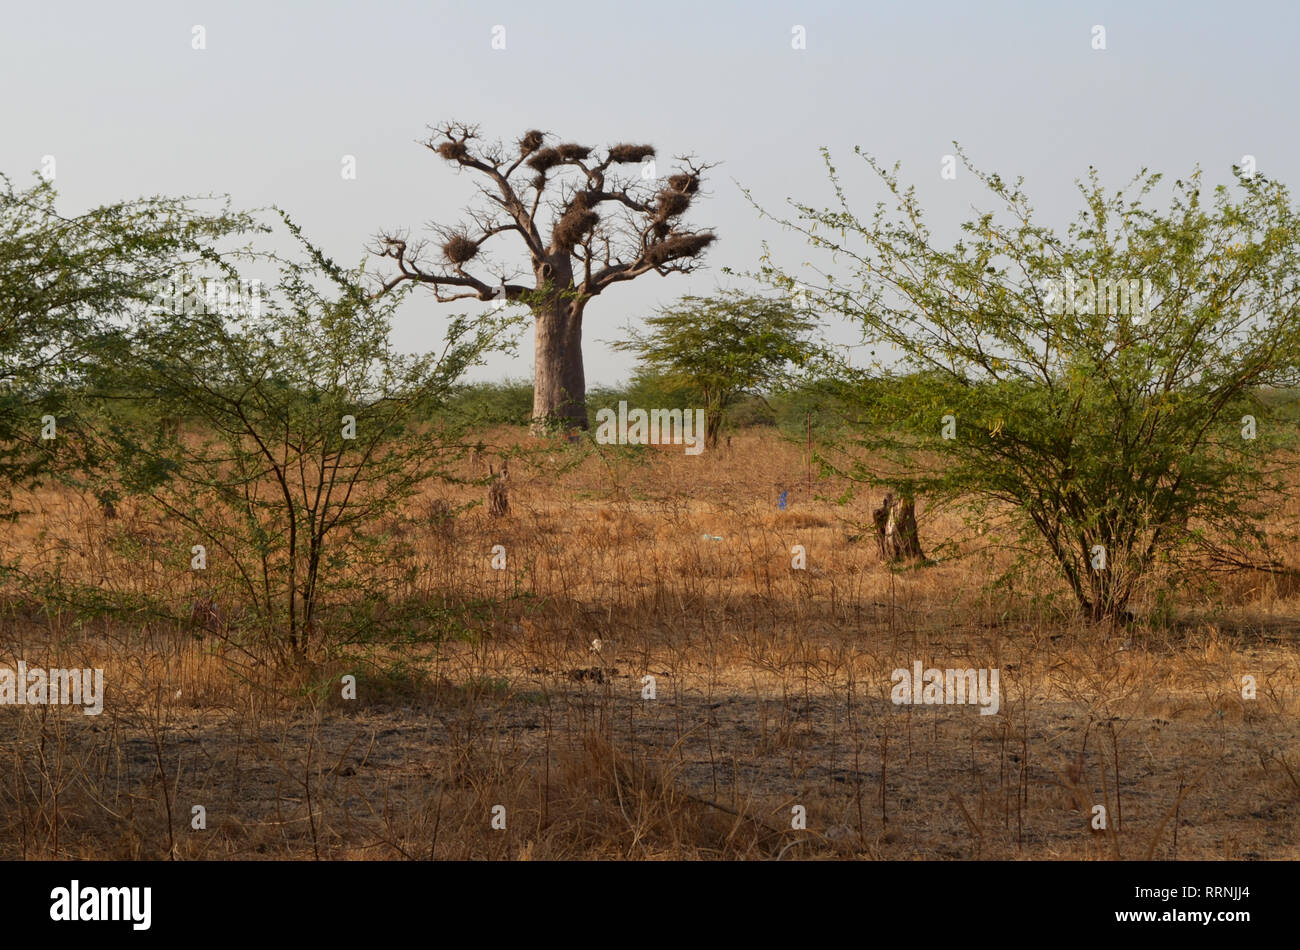 Baobab with stork nests in the dry savanna of the Sahel region (Senegal, Western Africa) - Stock Image